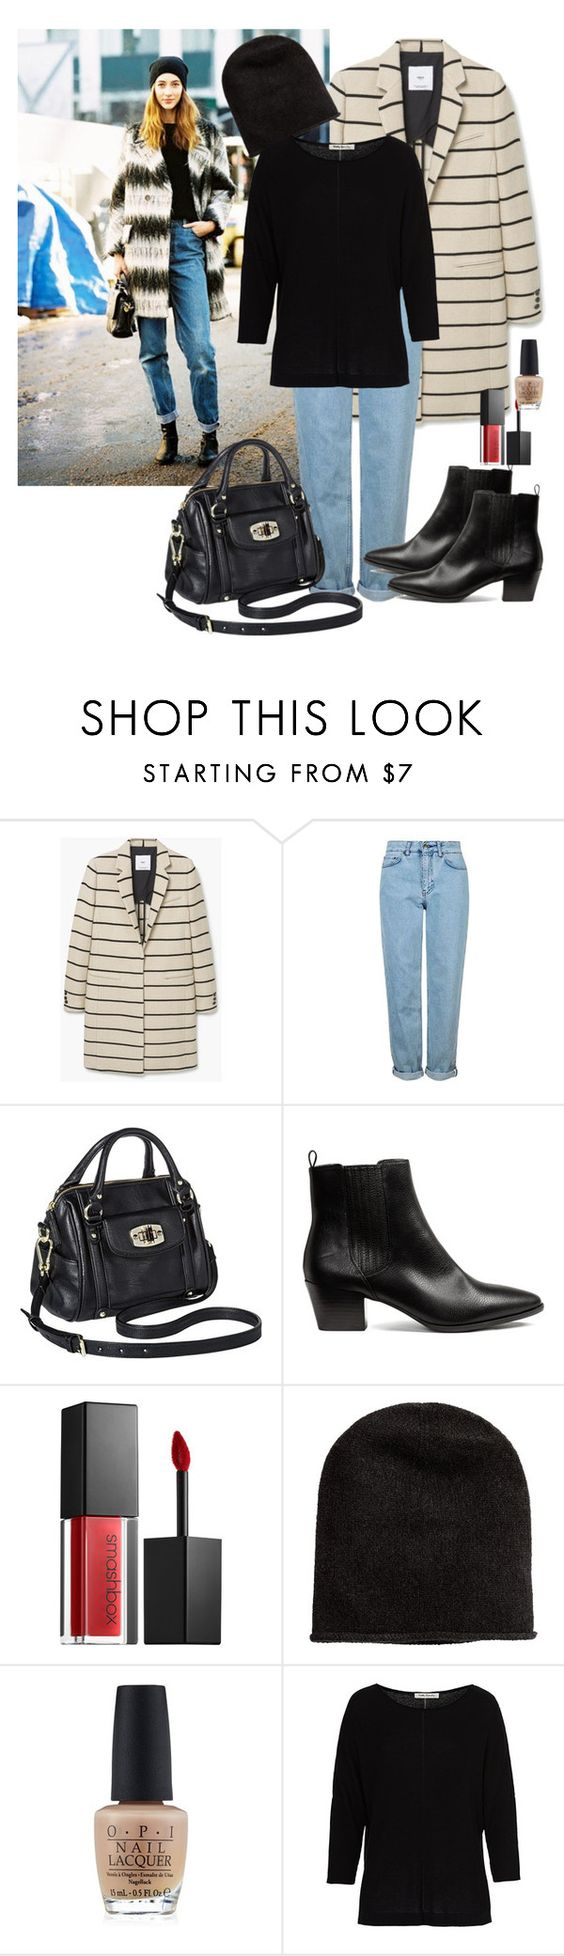 """Boot Season"" by dazzlious ❤ liked on Polyvore featuring MANGO, Topshop, Merona, Smashbox, OPI and Betty Barclay"